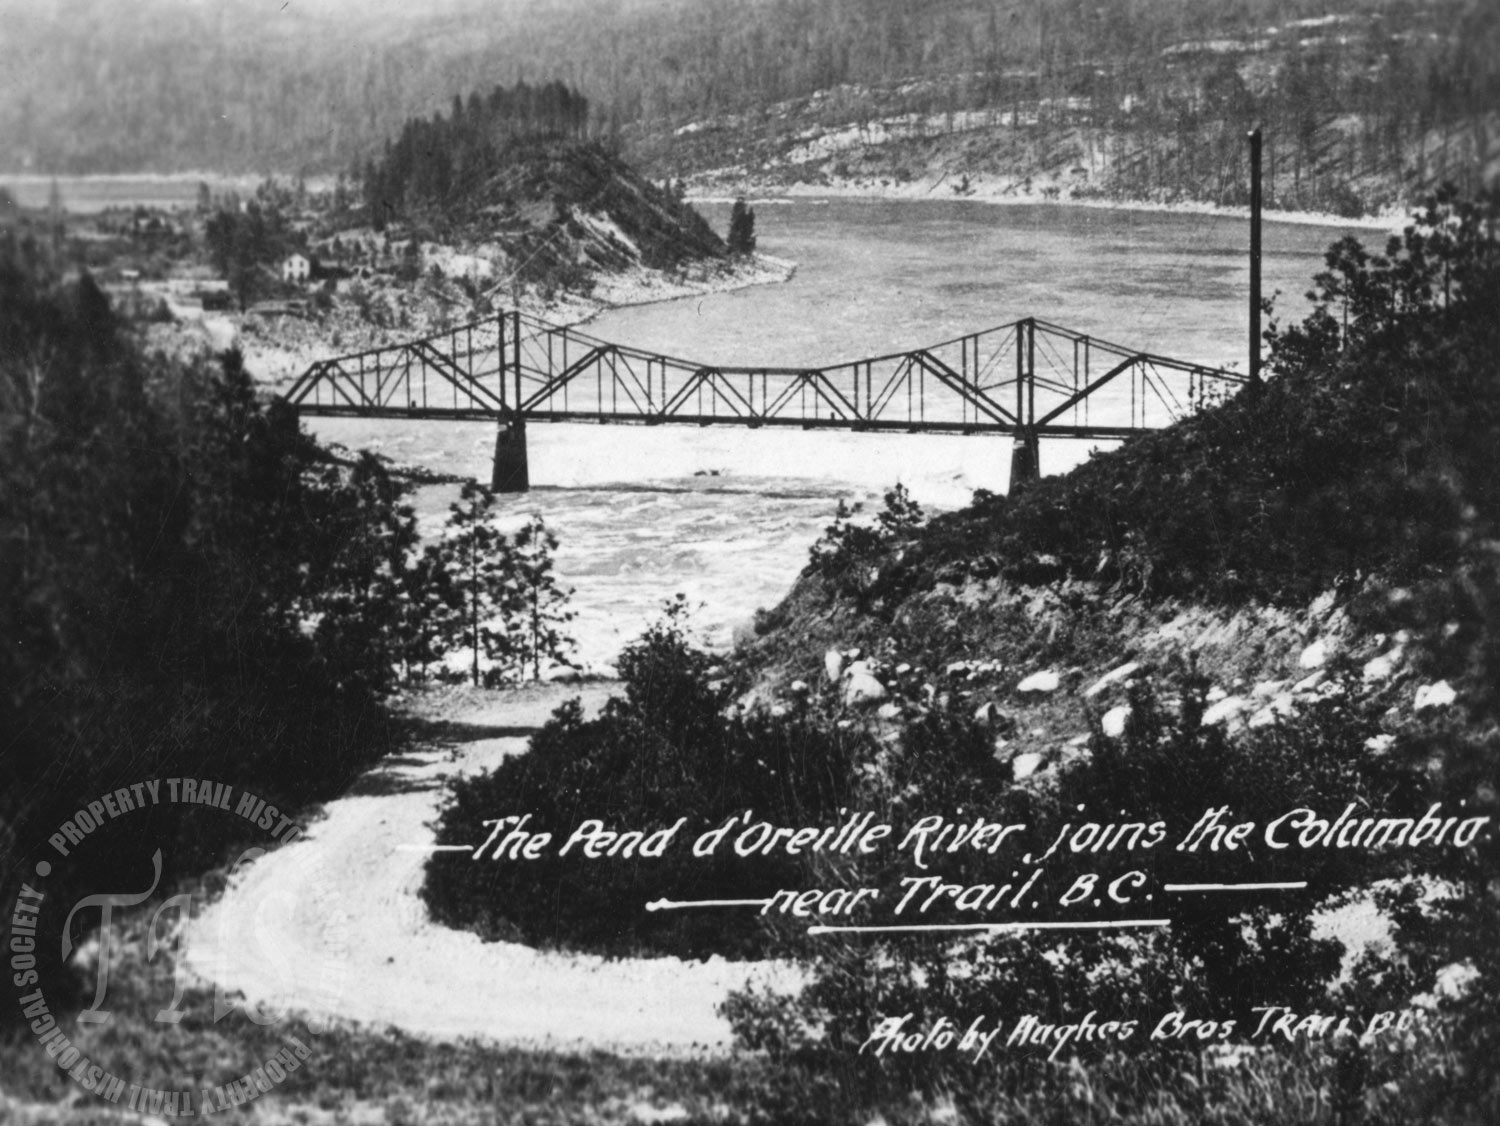 Waneta Bridge at confluence of Pend d'Oreille and Columbia Rivers (Hughes) - 1930